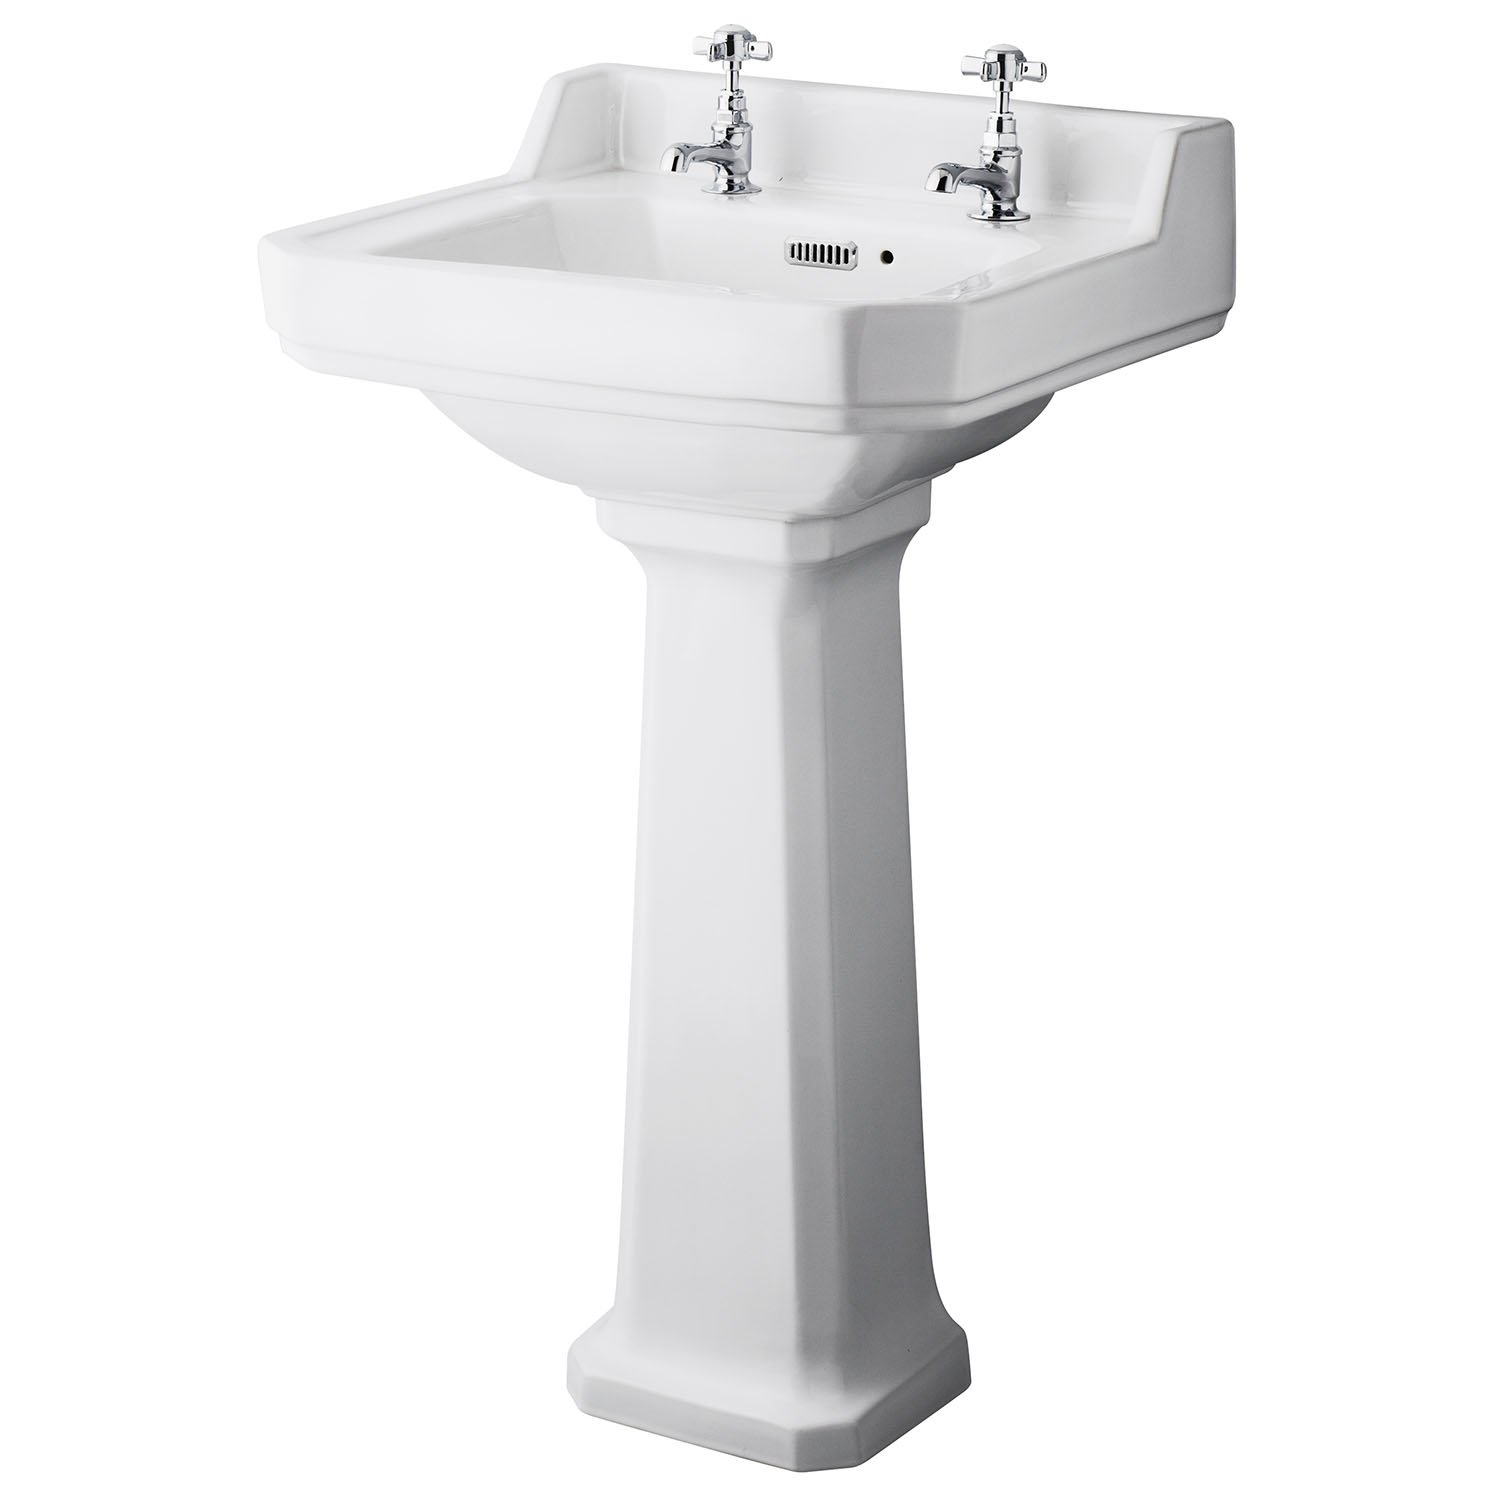 Old London CCR017 Richmond Basin and Pedestal, White, 600mm